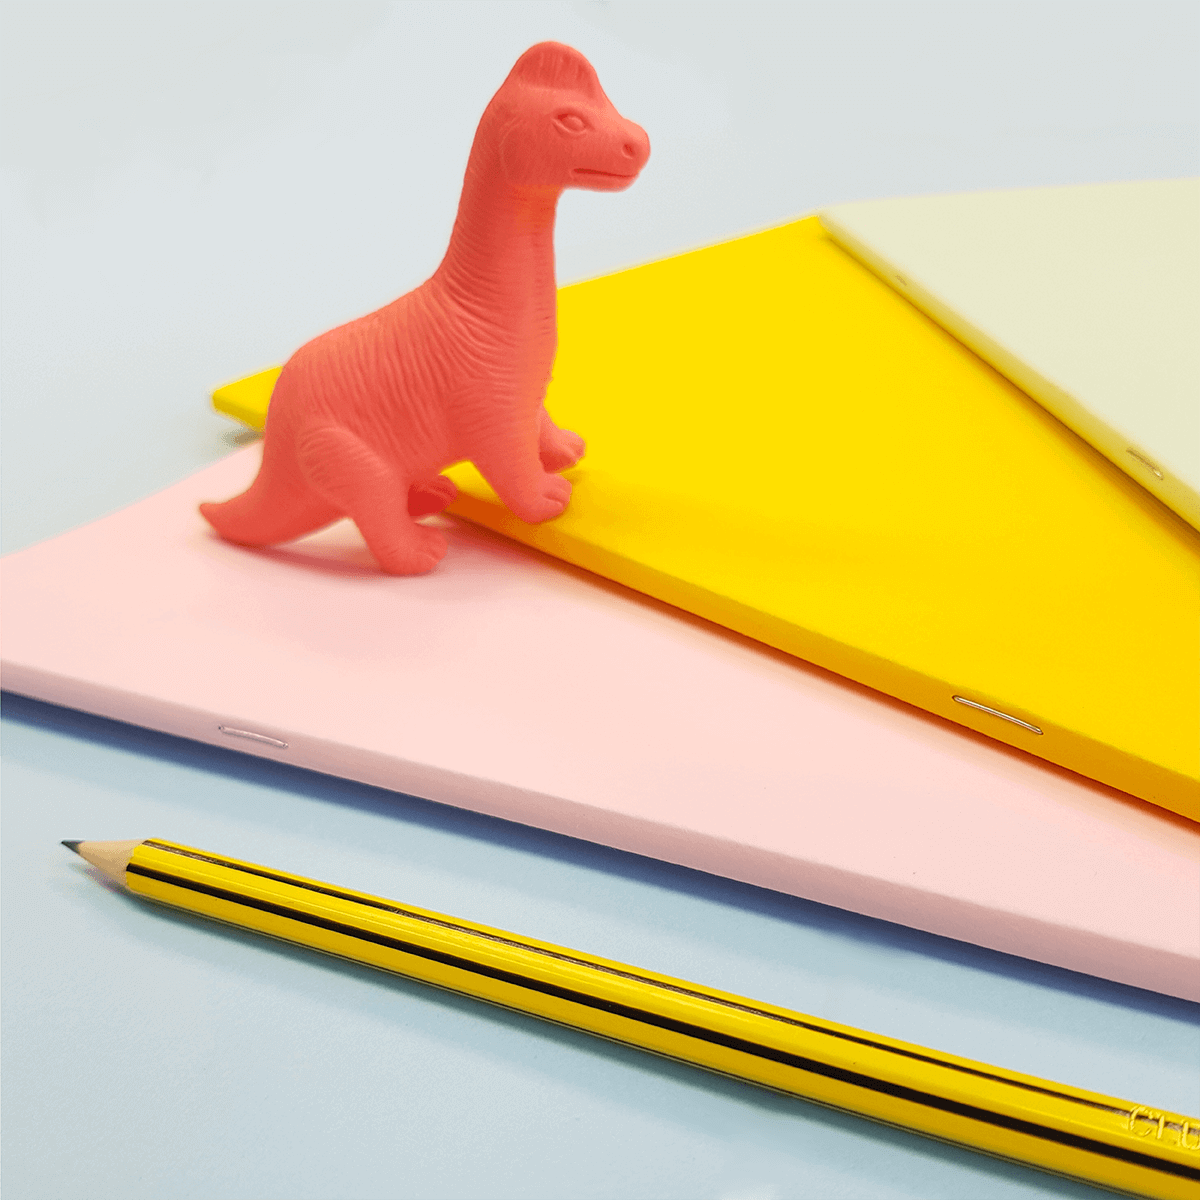 Pink dinosaur eraser, pencil and notebooks